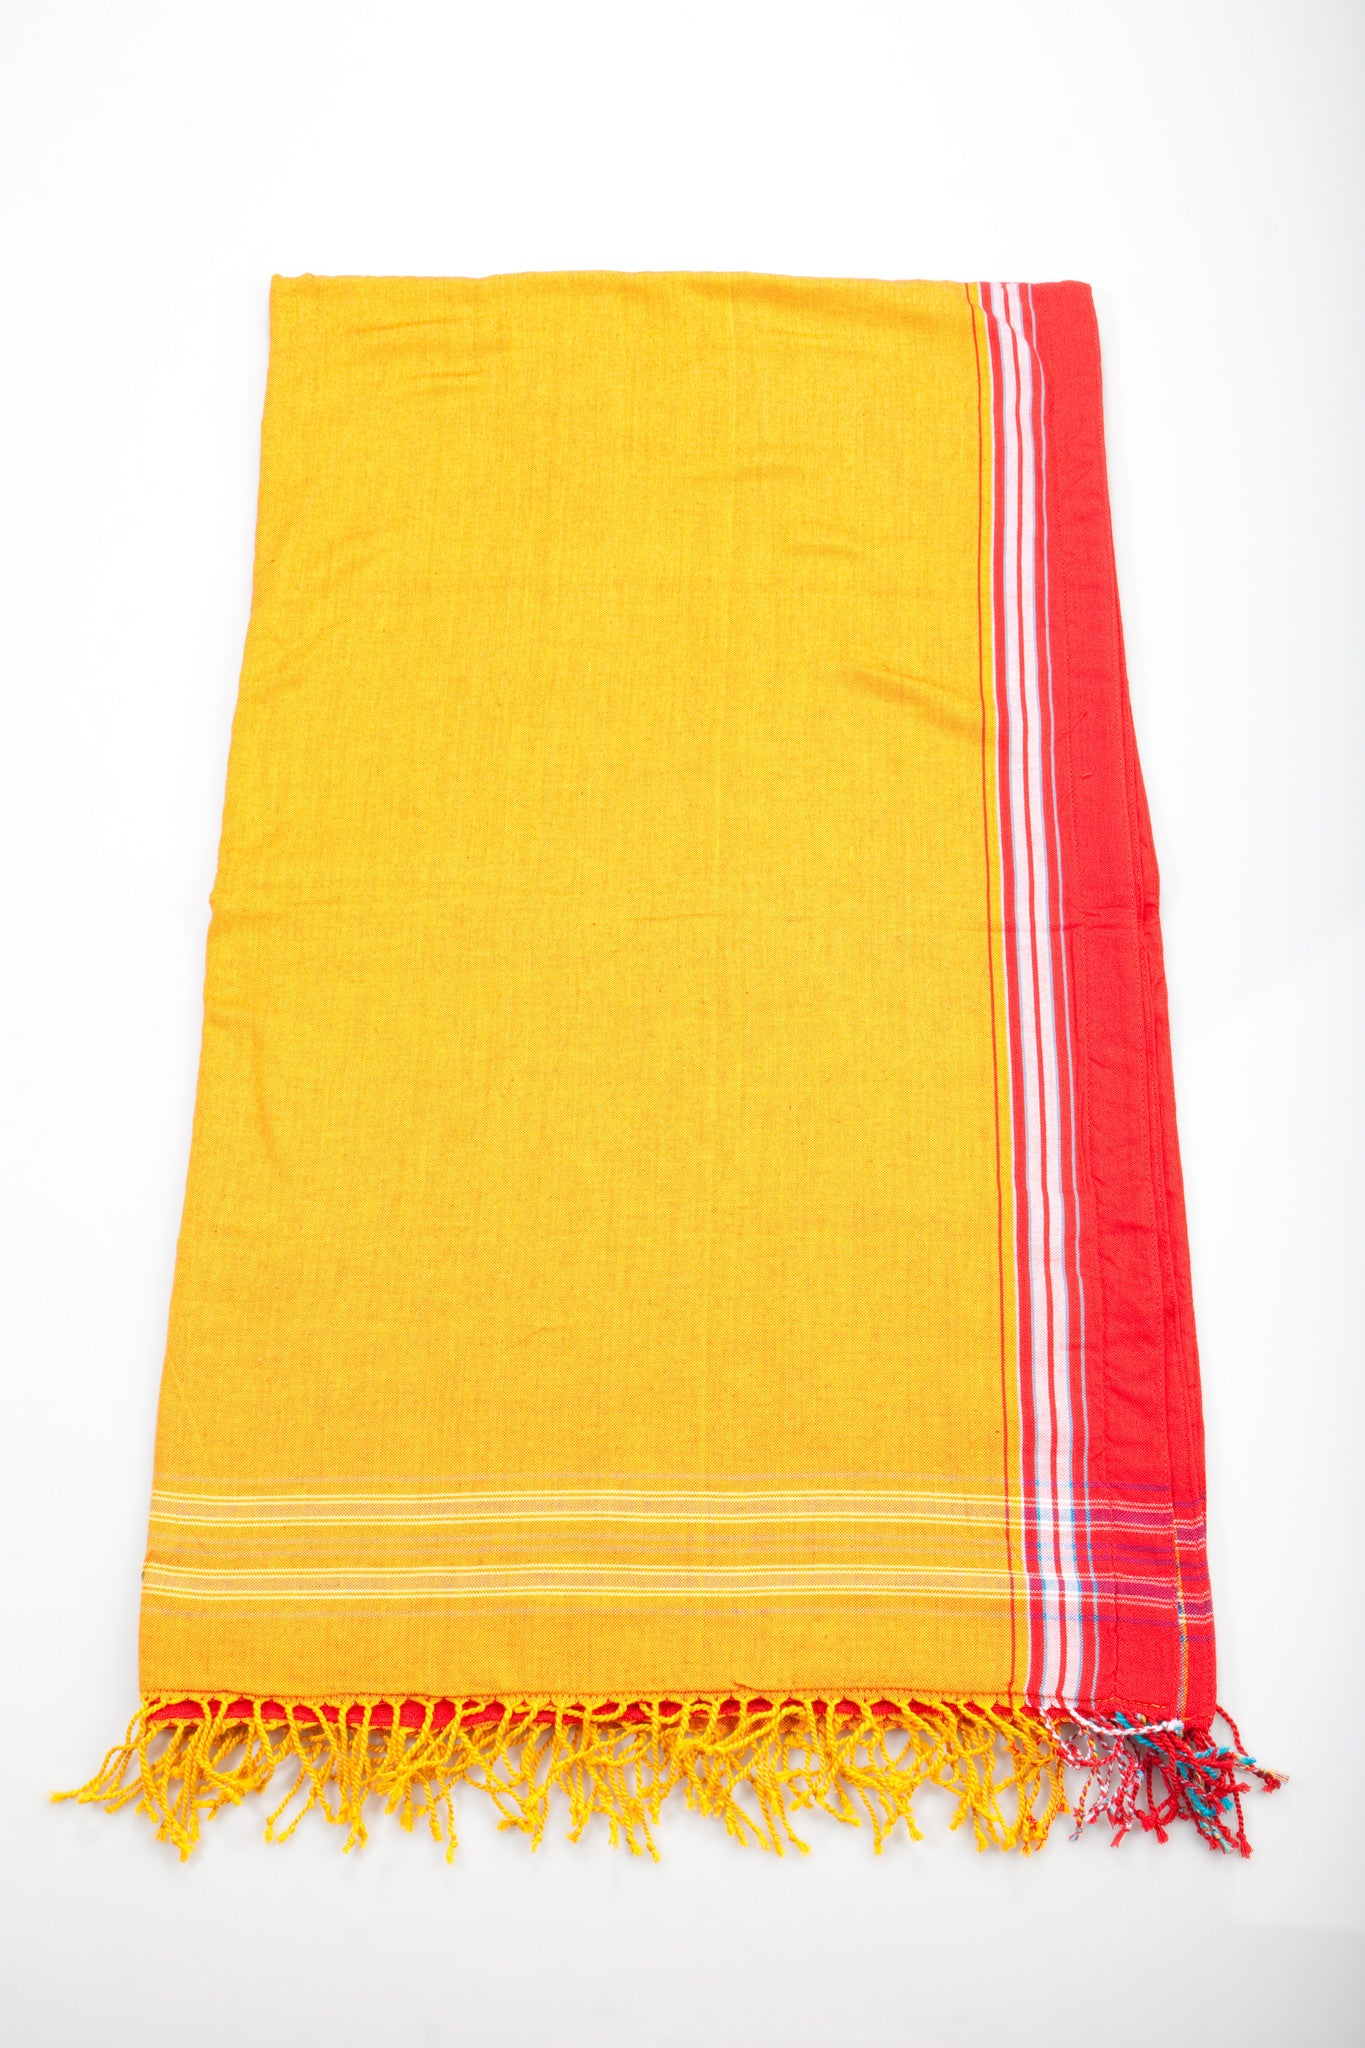 Orange/Red Beach Towel - 2 piece set